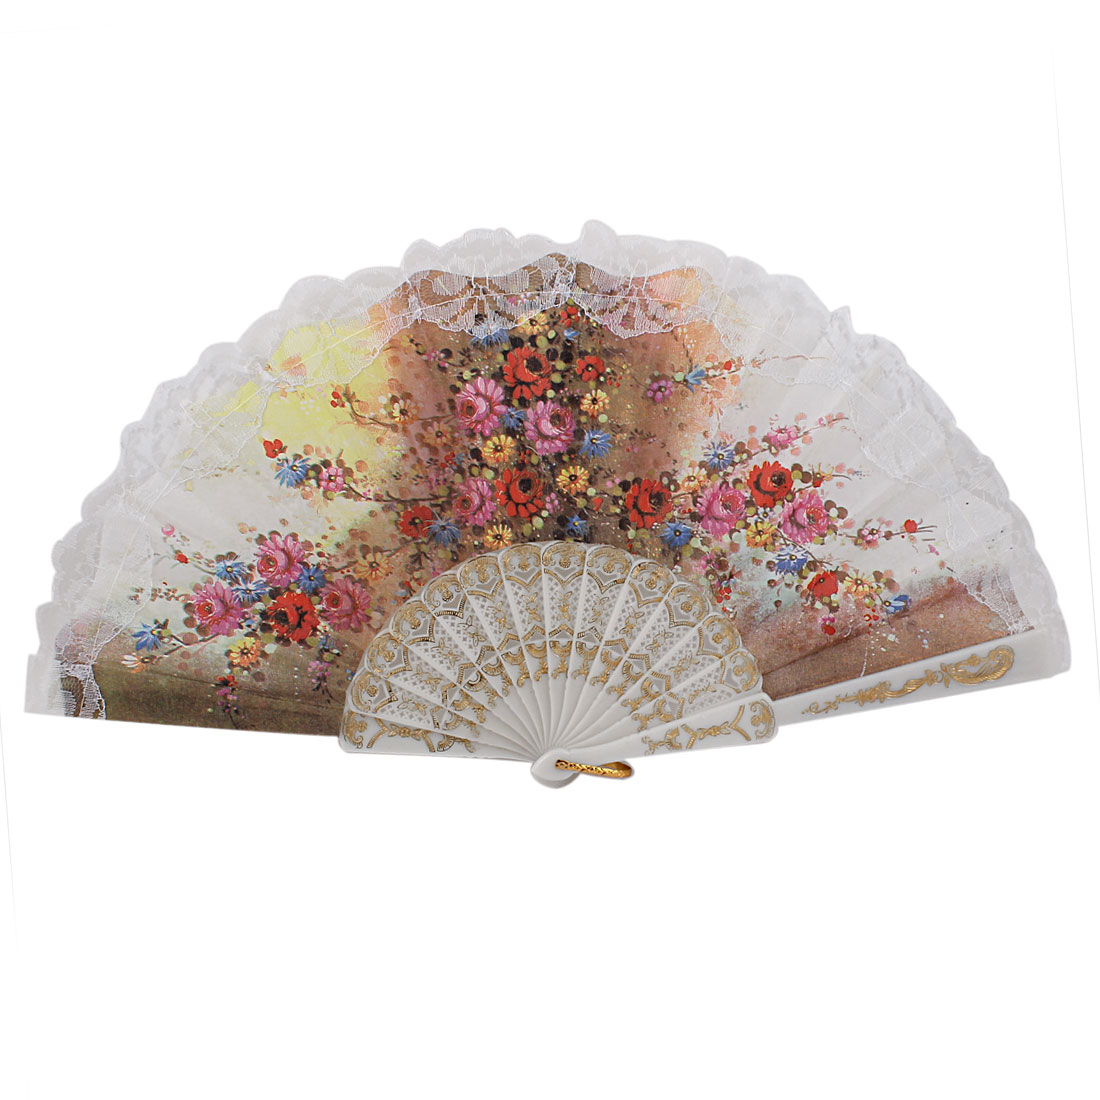 Glitter Powder Flowers Pattern Dancing Wedding Party Fabric Folding Hand Fan